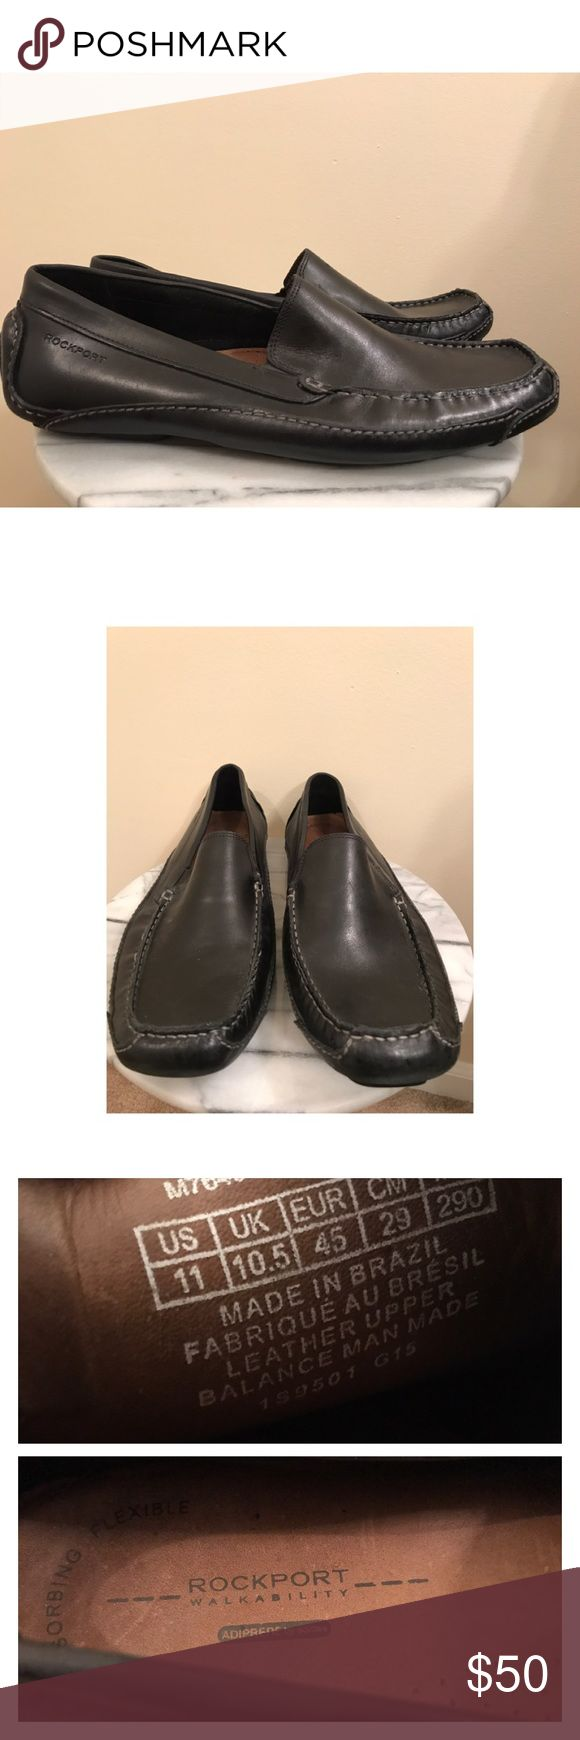 Rockport men's driving loafer 11 Almost new black leather men's driving loafer from Rockport size 11. Slight scuffing which could be buffed out with polish. Rockport Shoes Loafers & Slip-Ons